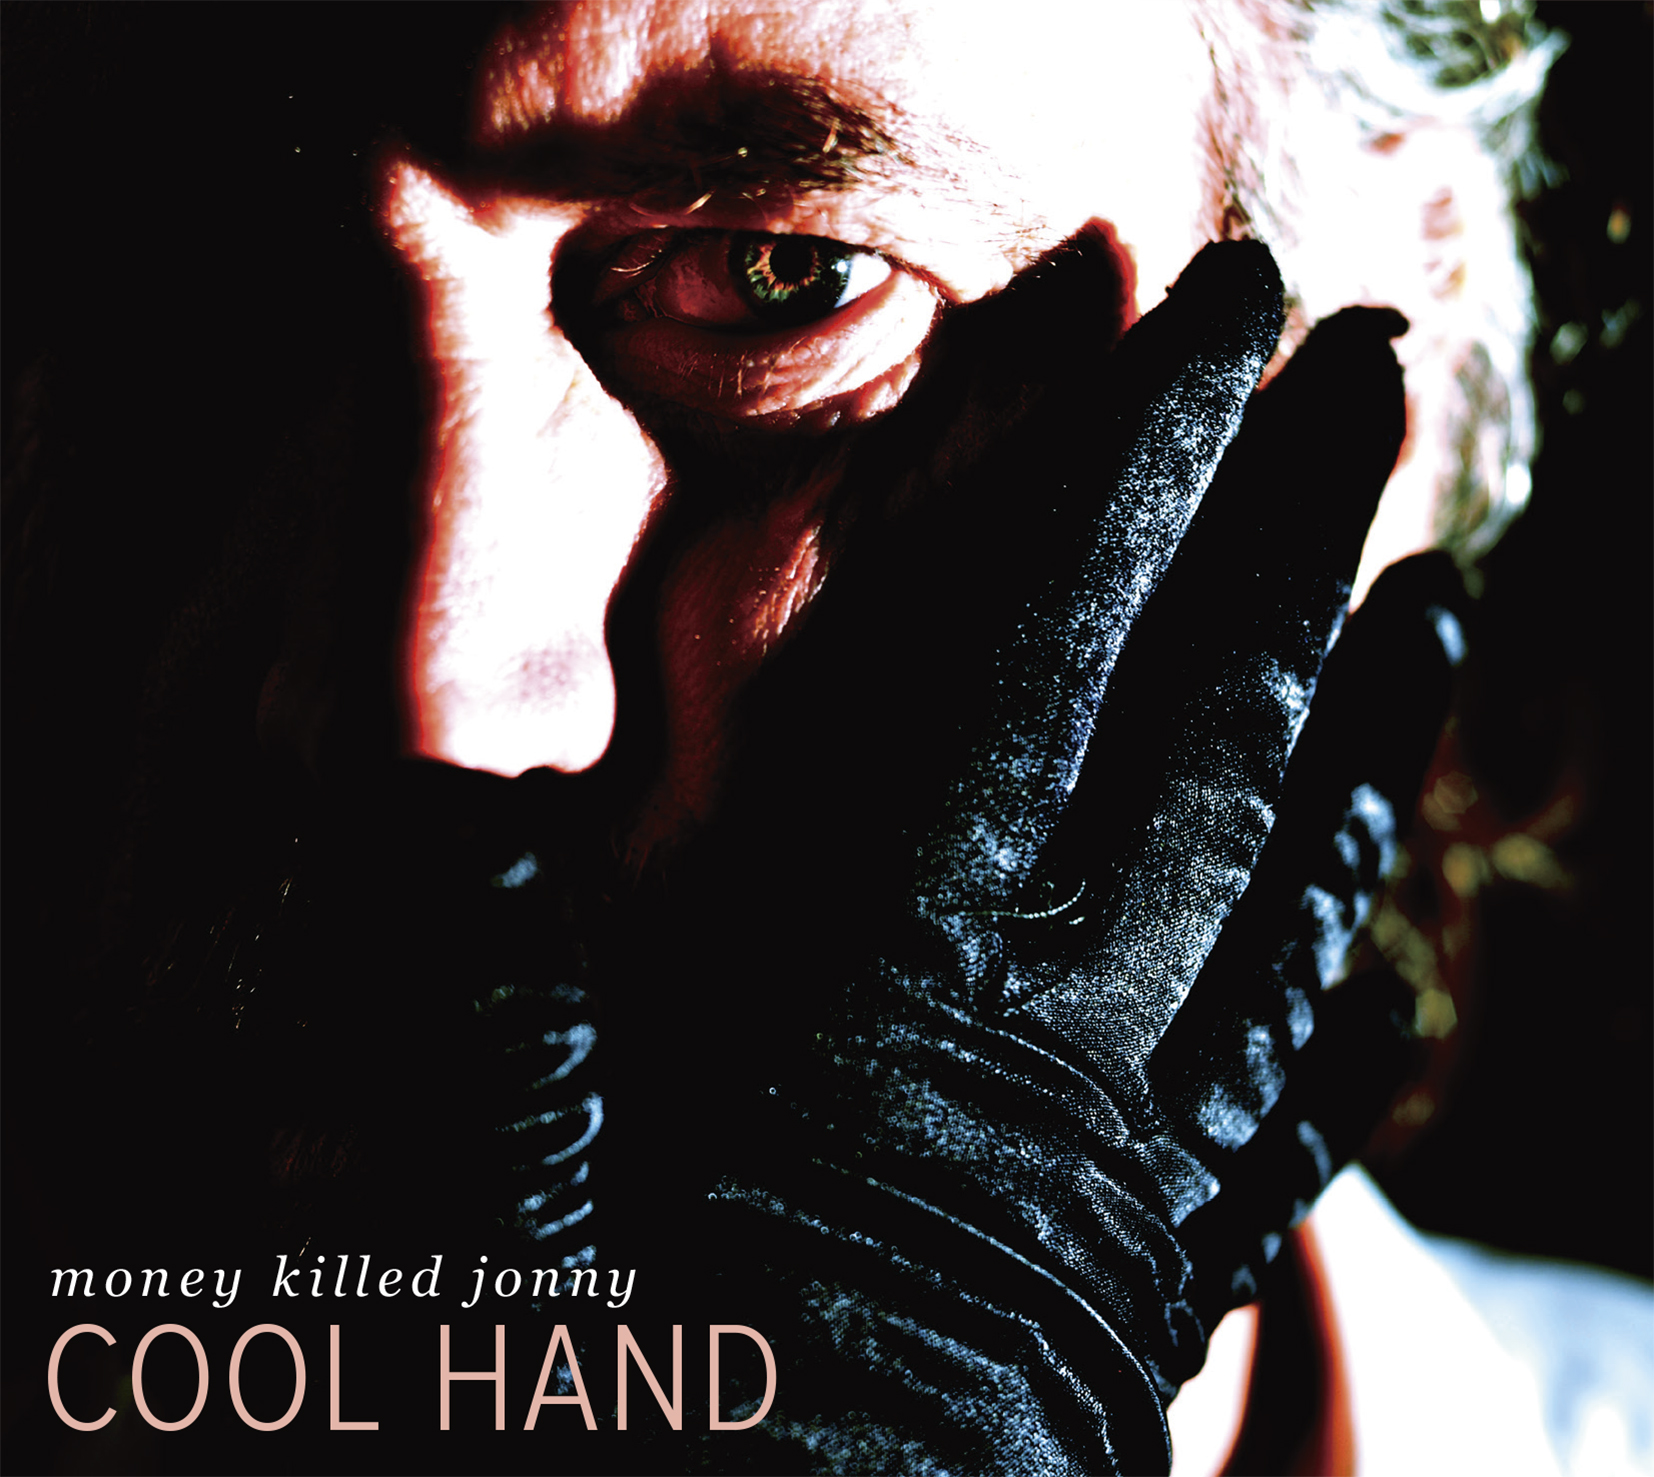 Cool Hand Cover Large.jpg